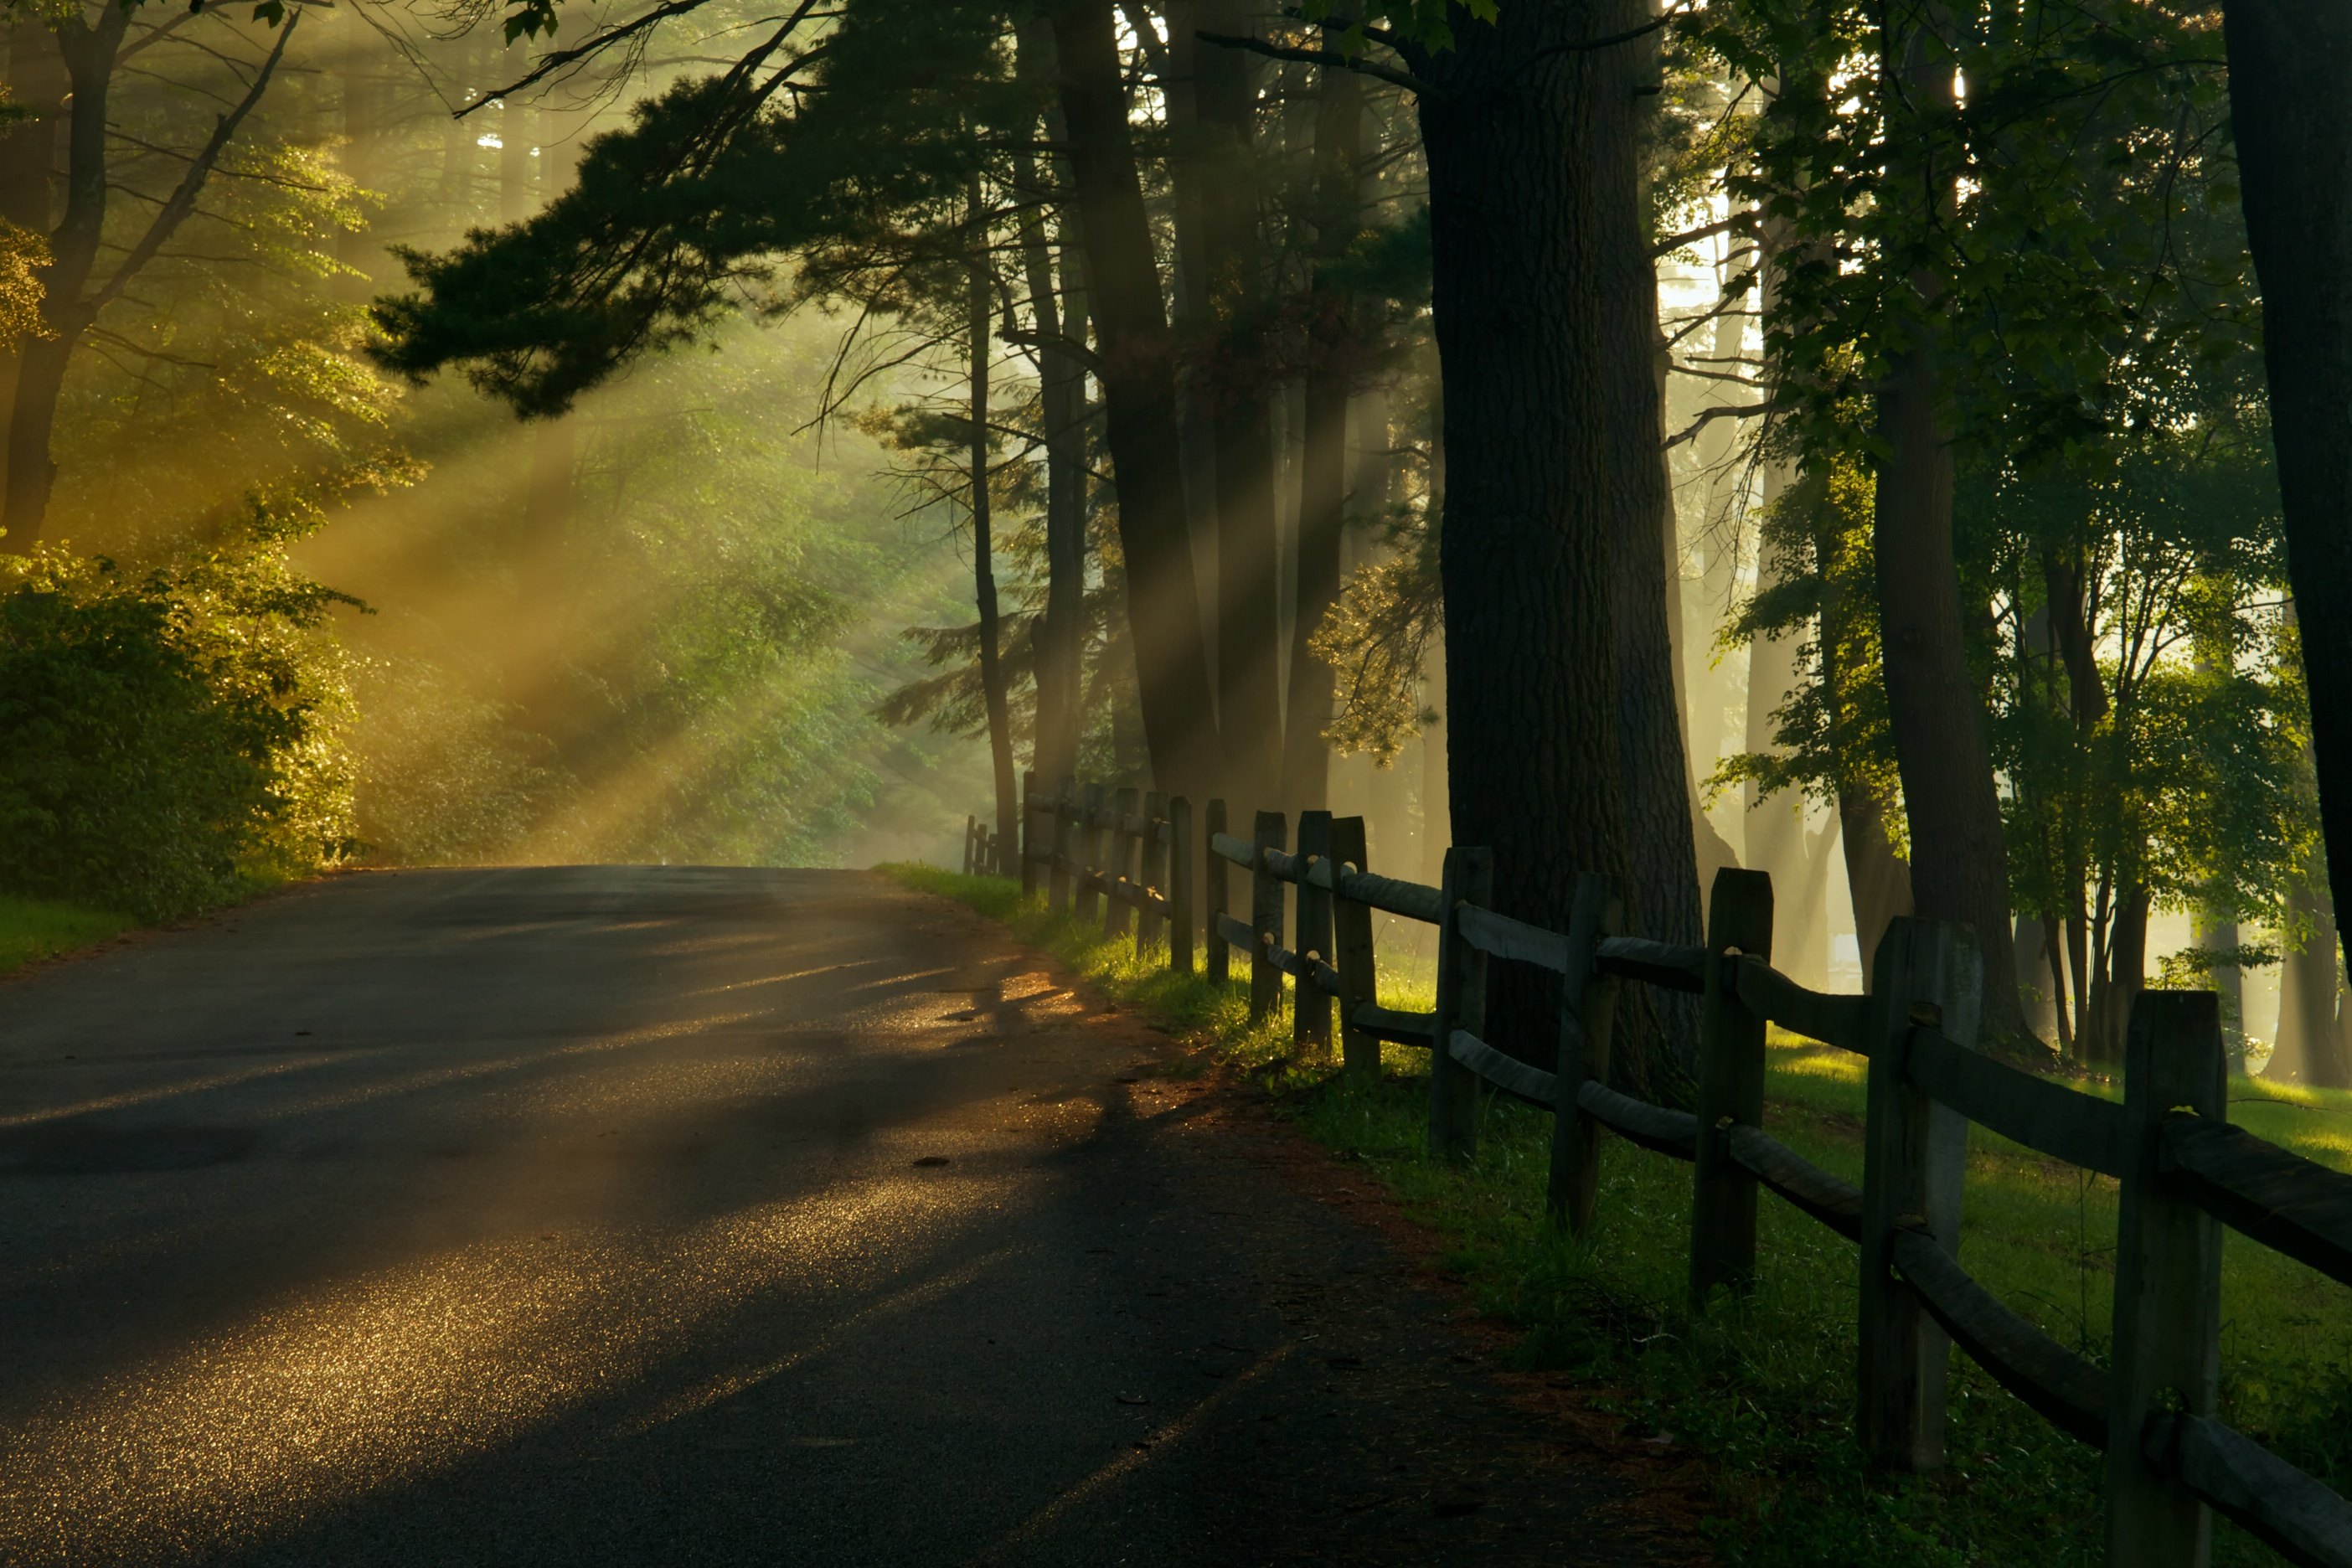 Sun streaming through trees along a road and wooden fence